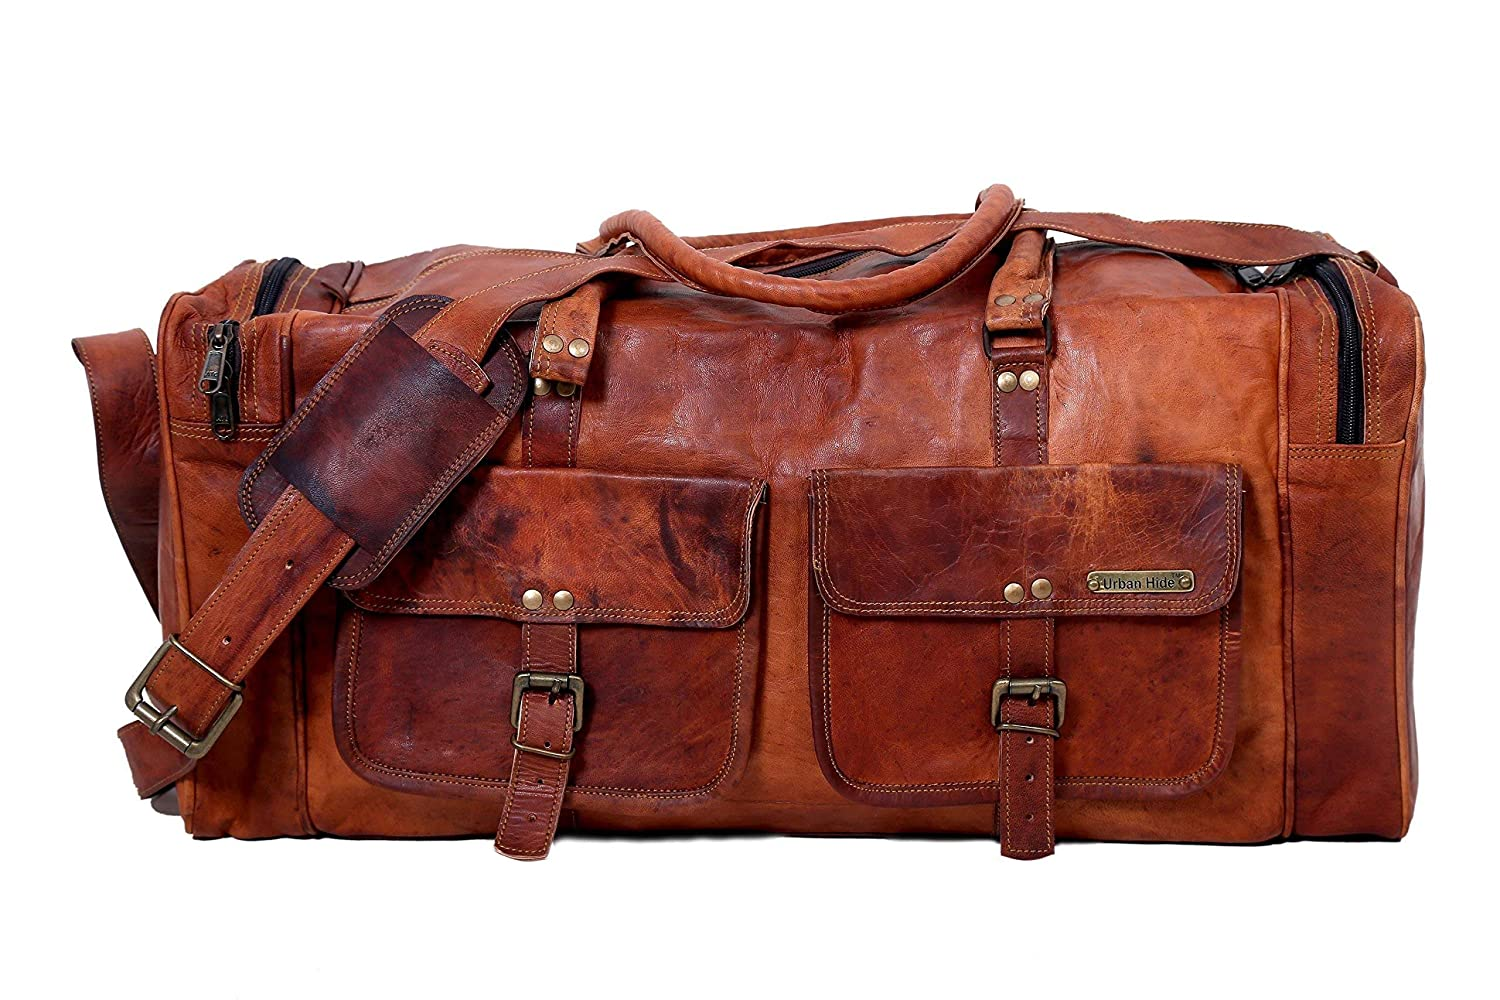 24 Inches Handmade Genuine Vintage Leather Large Travelling Duffel Weekend Bag